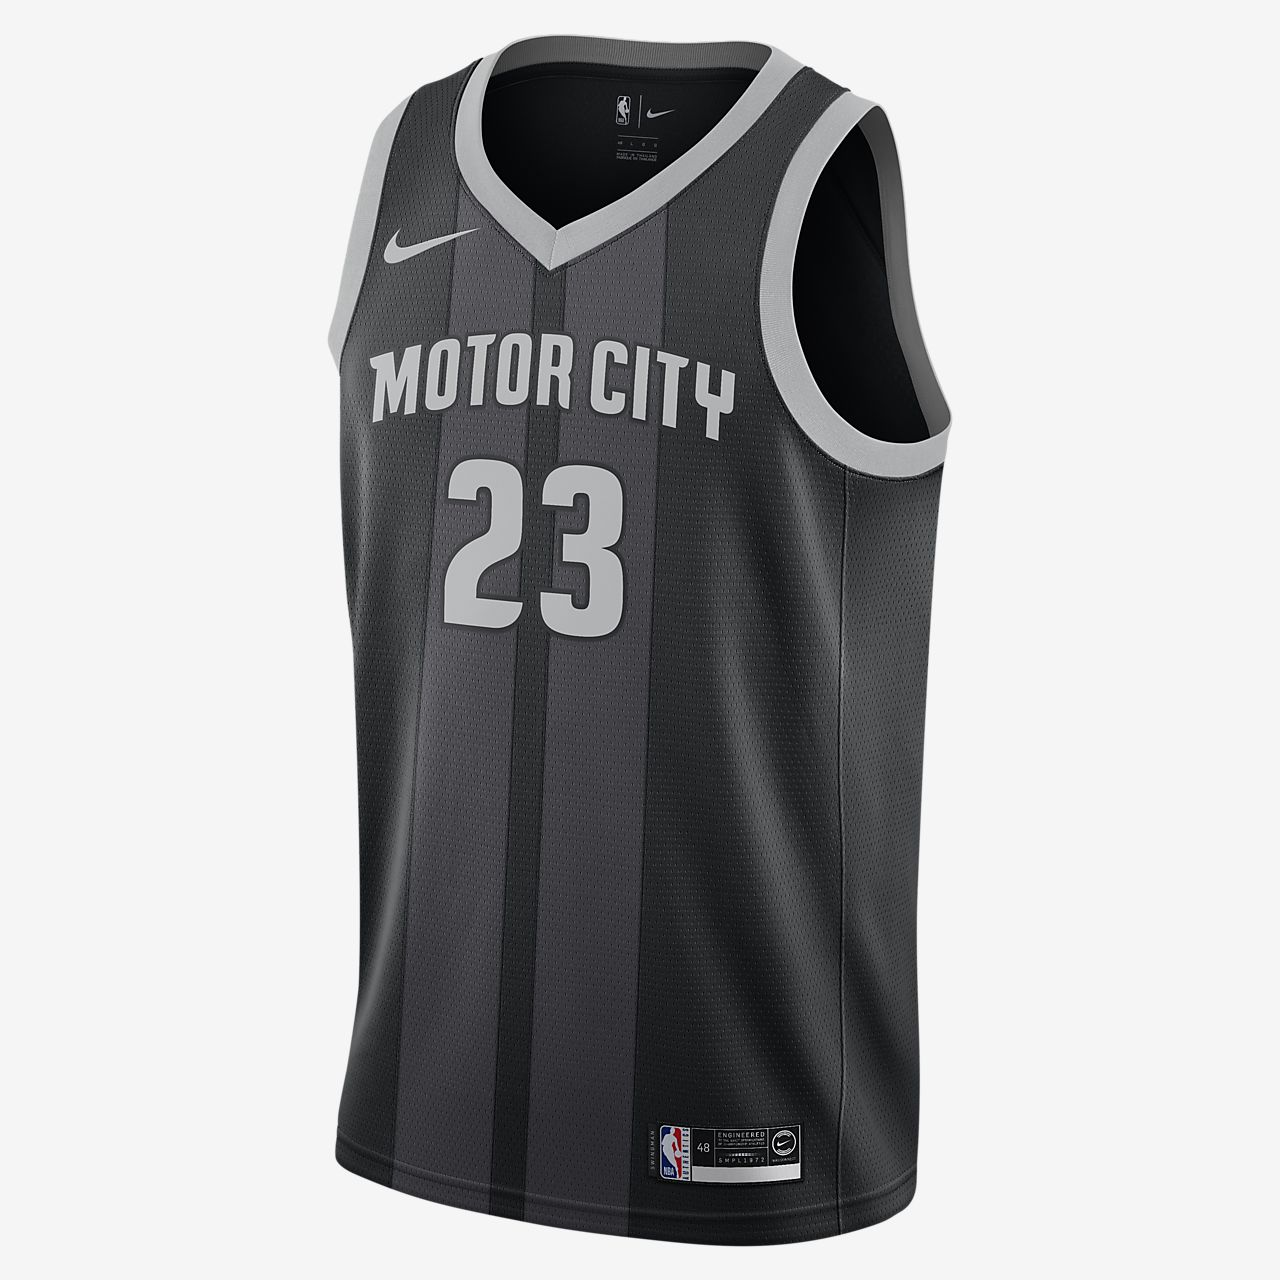 Men s Nike NBA Connected Jersey. Blake Griffin City Edition Swingman  (Detroit Pistons) b71078ae3